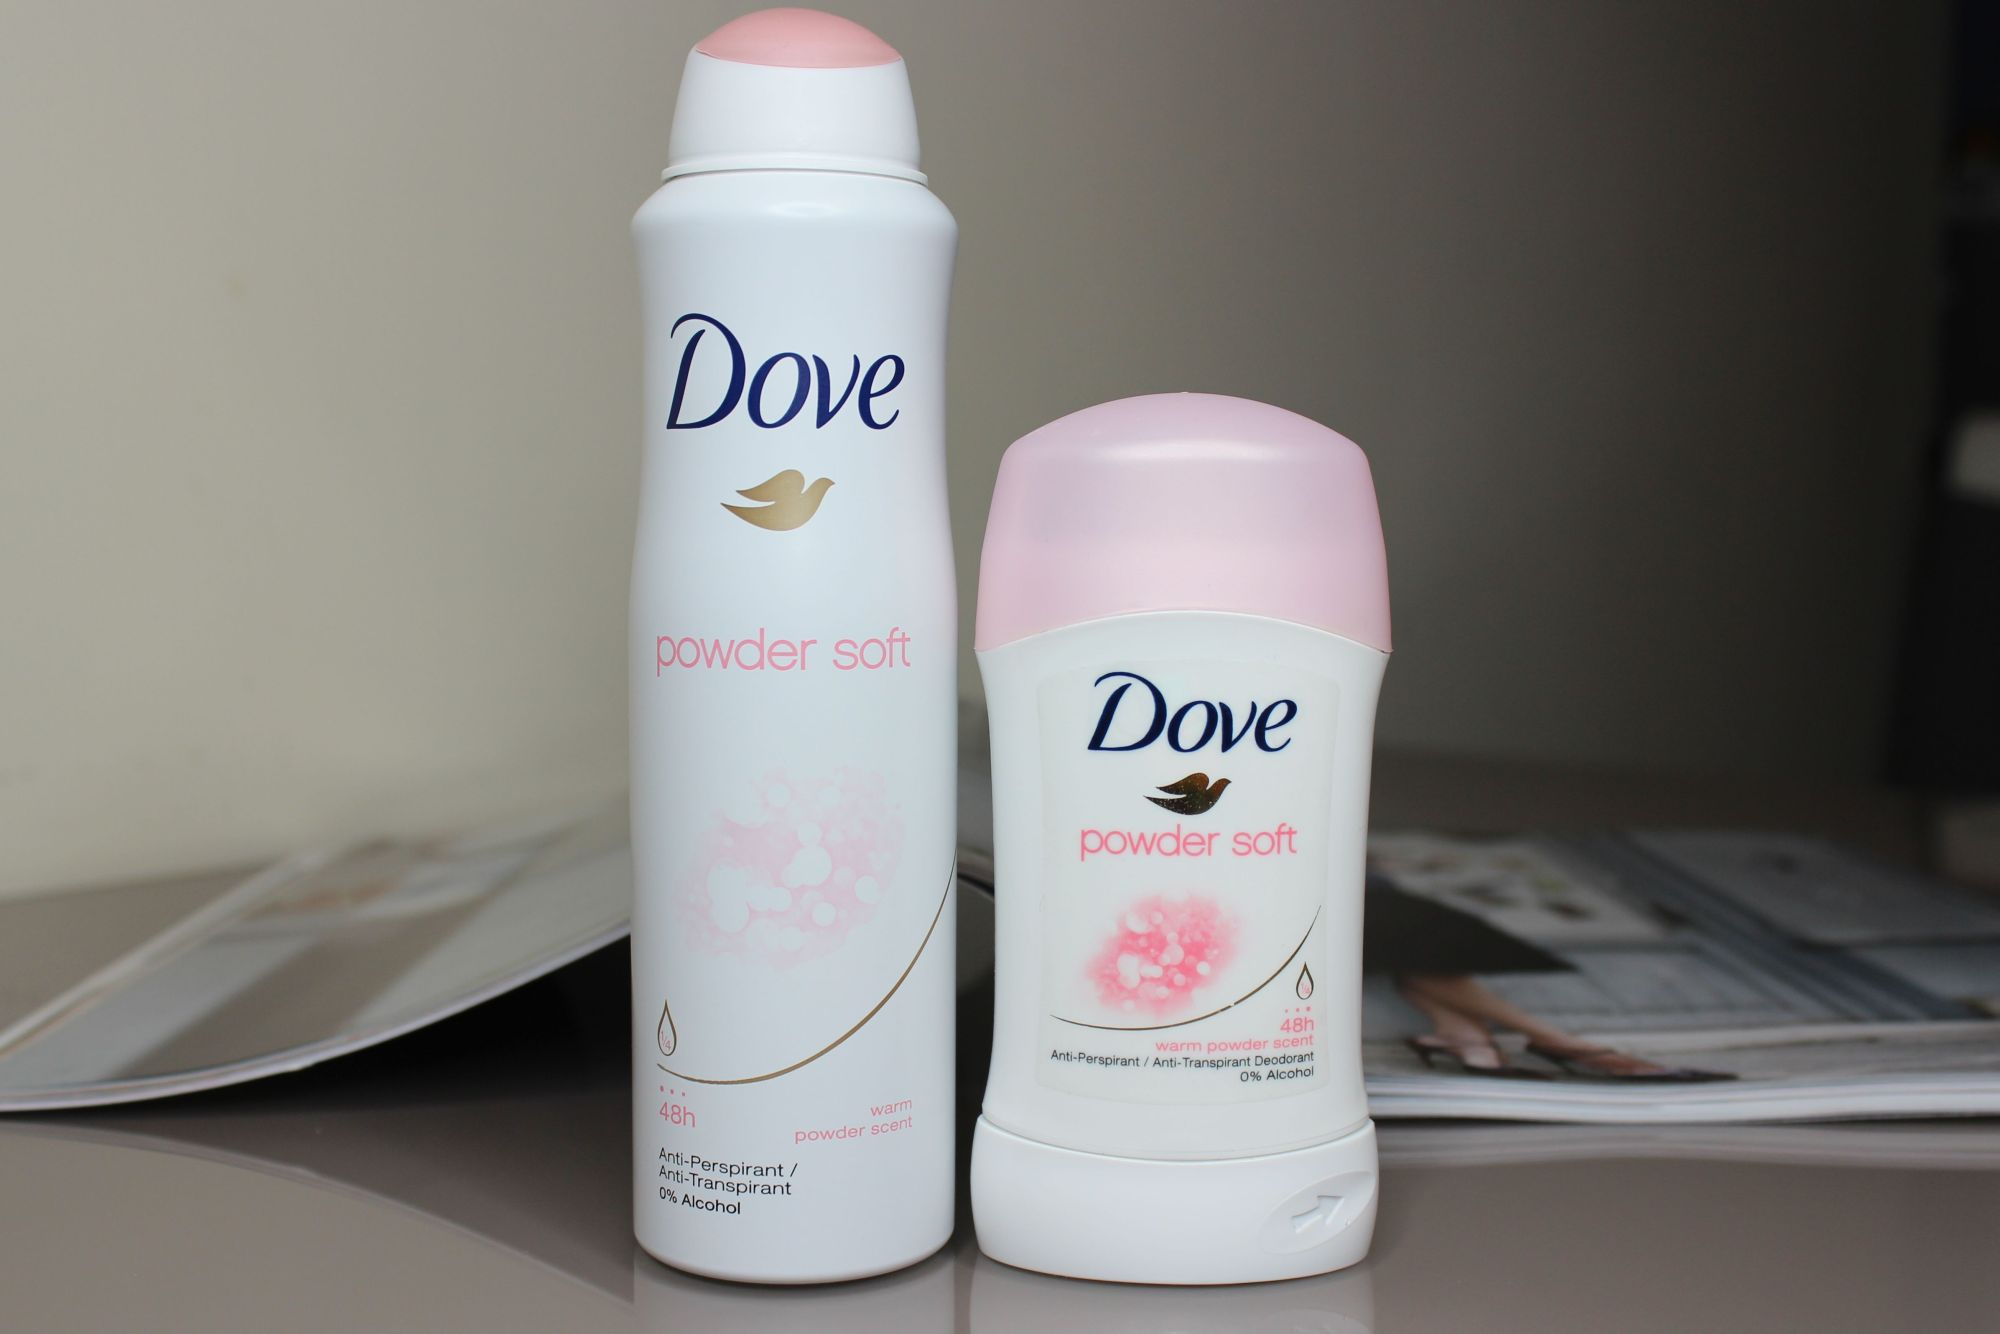 dove-powder-soft-antiperspirant-line